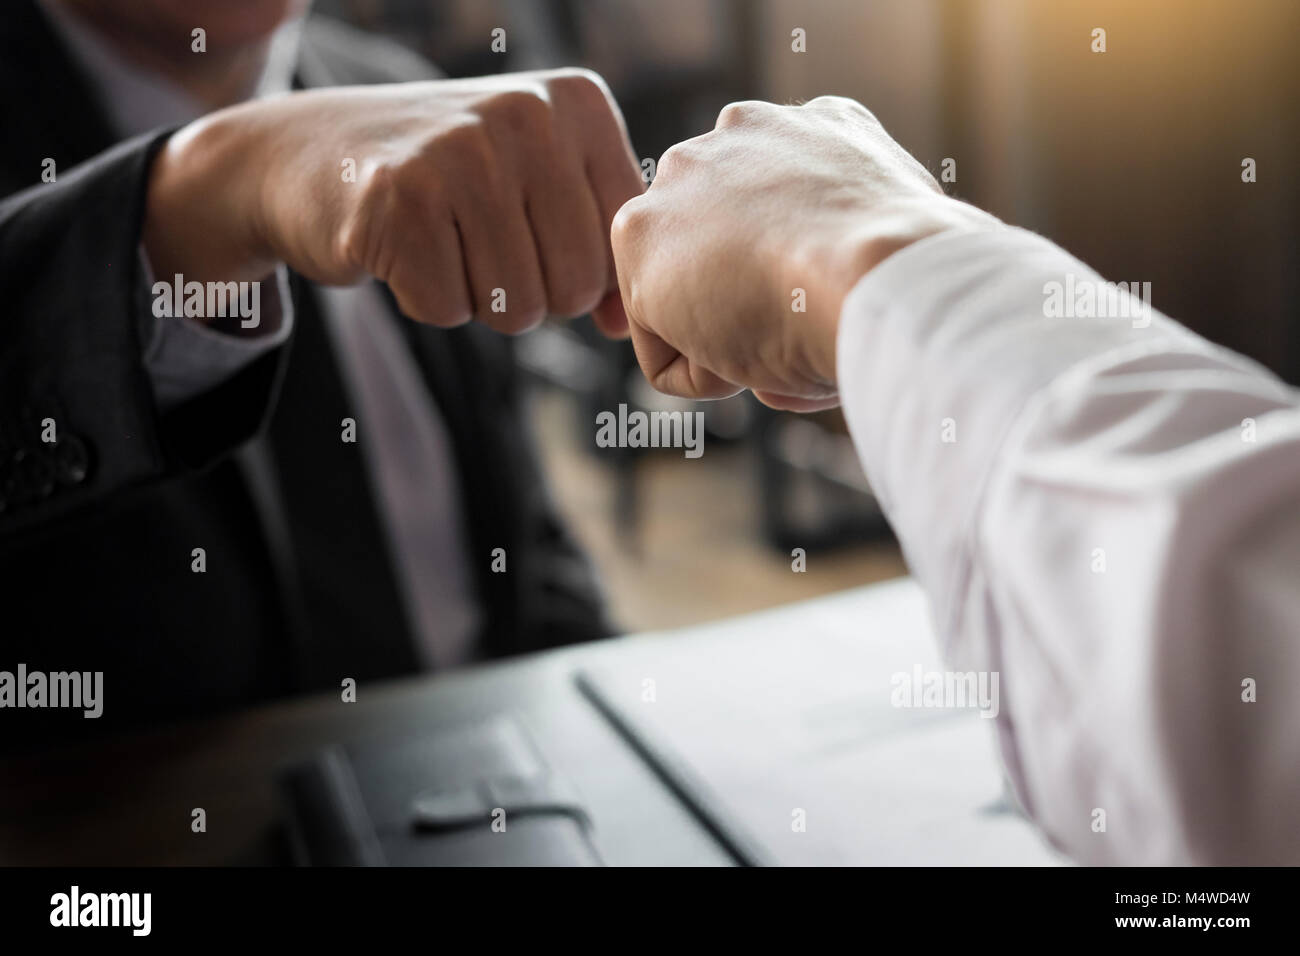 Business partners giving fist bump to commitment greeting start up business partners giving fist bump to commitment greeting start up new project or complete mission successful deal together with strong teamwork sta m4hsunfo